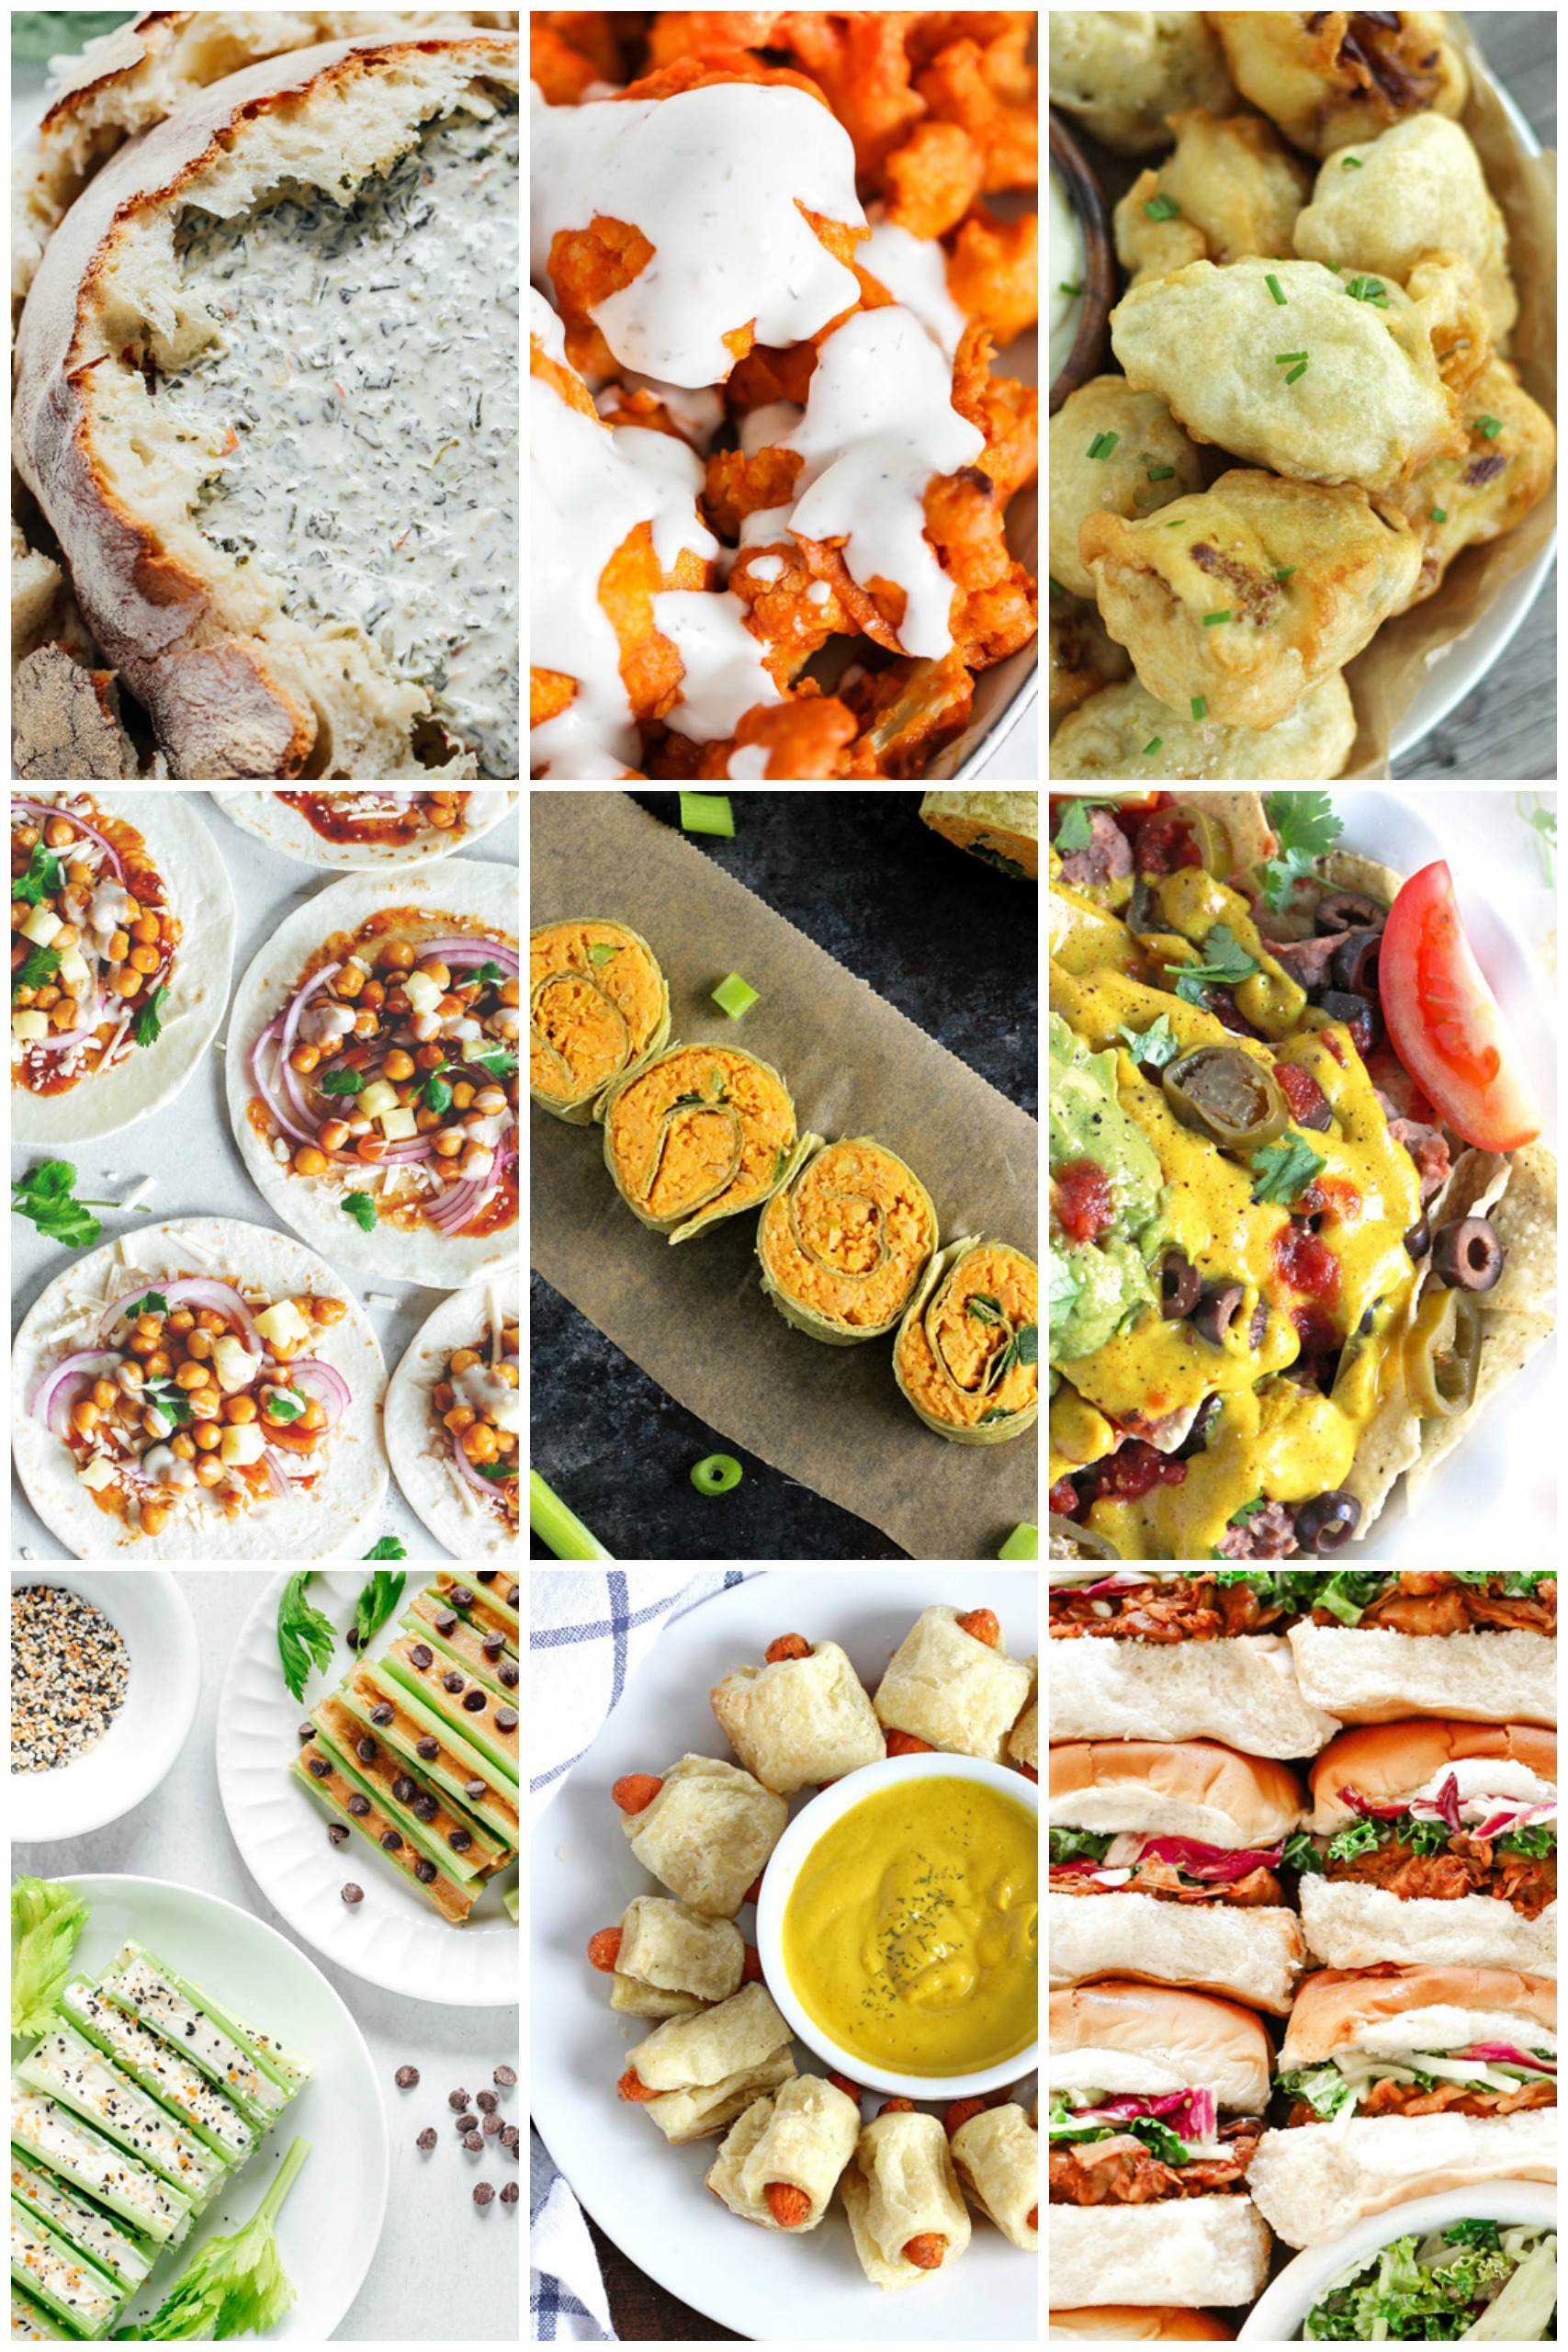 Fun Vegan Super Bowl Snack Recipes For Game Day - There's a little bit of something for everyone without the overwhelm of what to make. Stick to what everyone wants to really snack on and you're all set. NeuroticMommy.com #superbowl2020 #snackroundup #vegansnacks